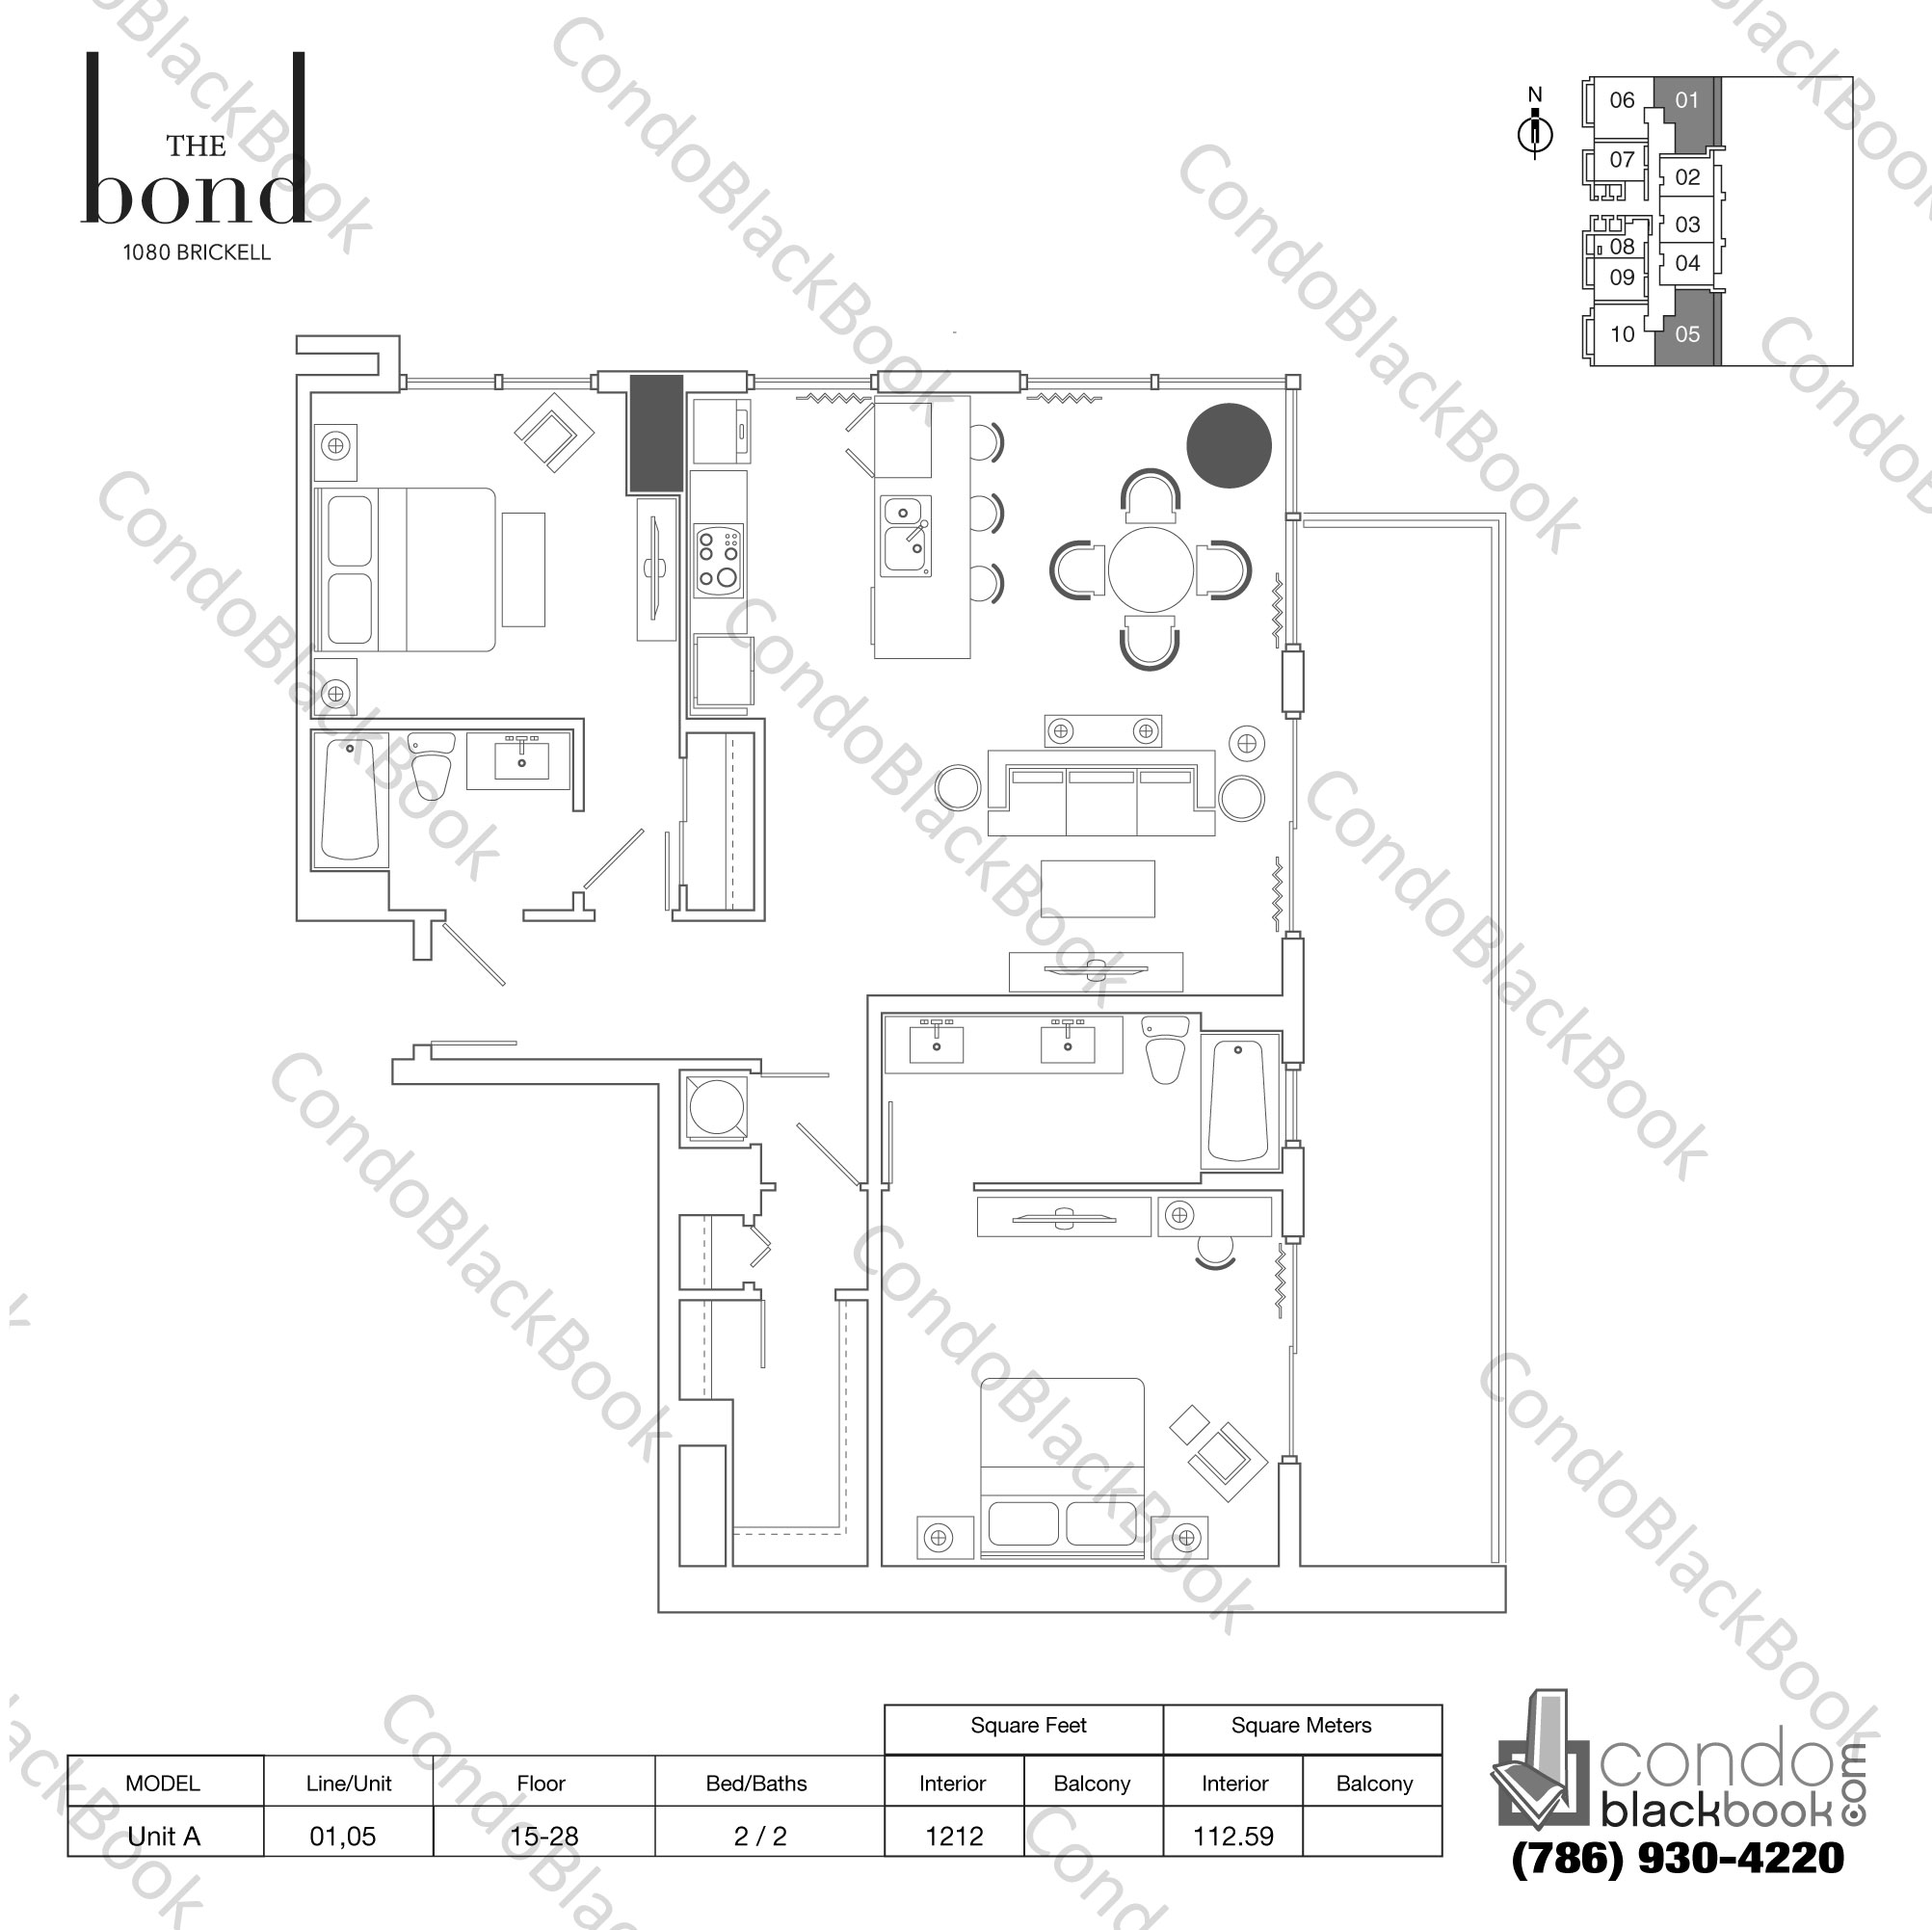 Floor plan for The Bond Brickell Miami, model UNIT A, line -, 2/2 bedrooms, 1,212 sq ft